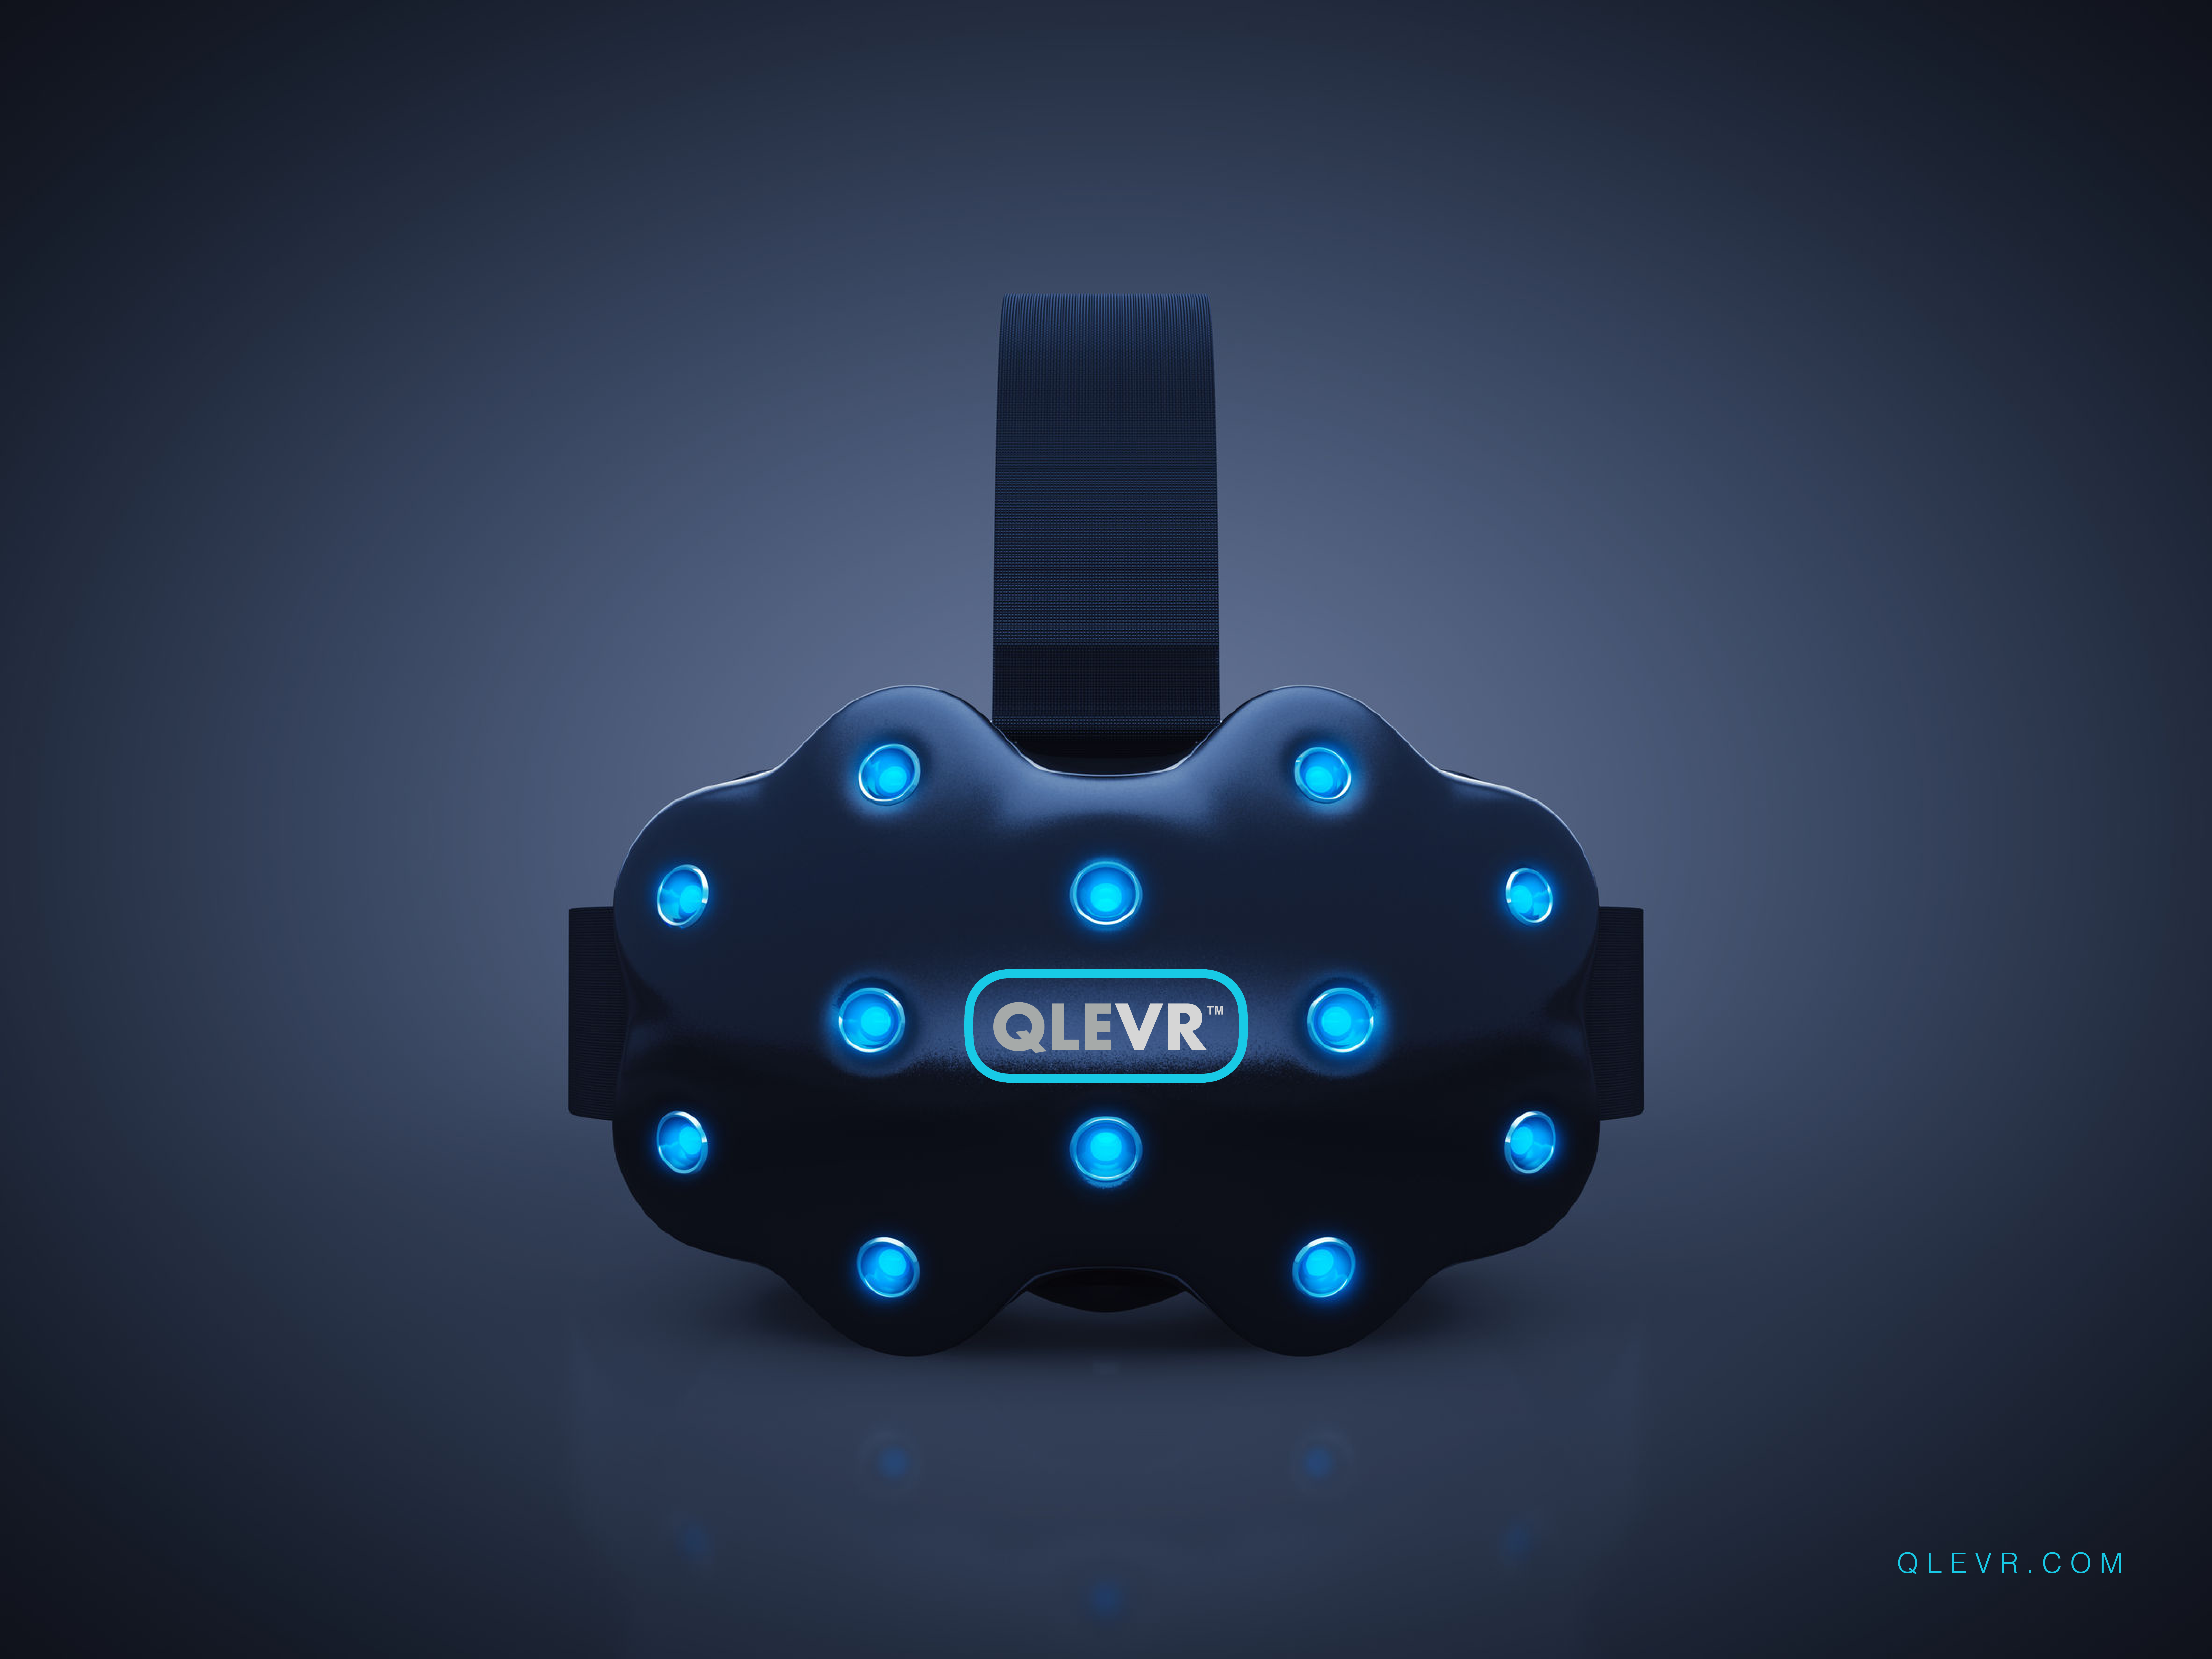 Mock up picture of QLEVR Goggles